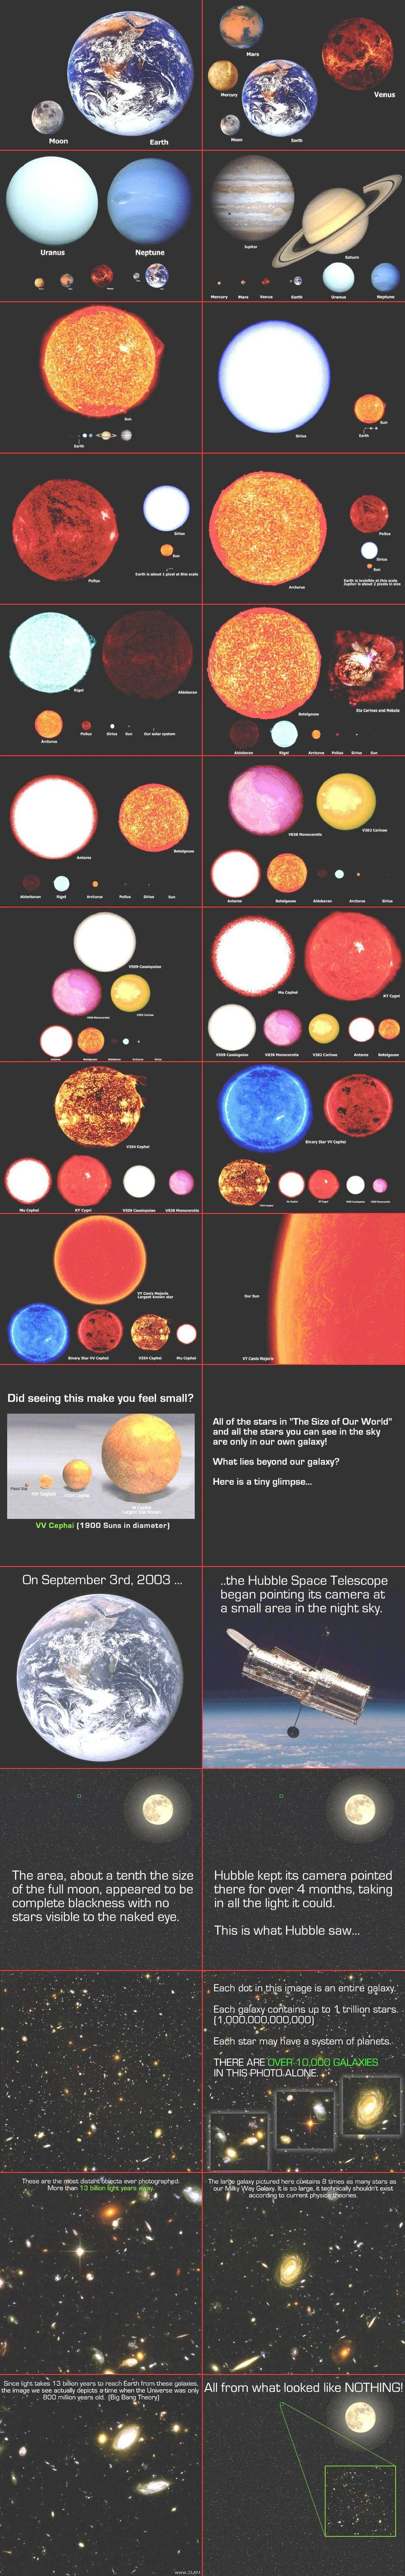 Visualizing The Size And Scale Of Our World | Gefällt mir ...